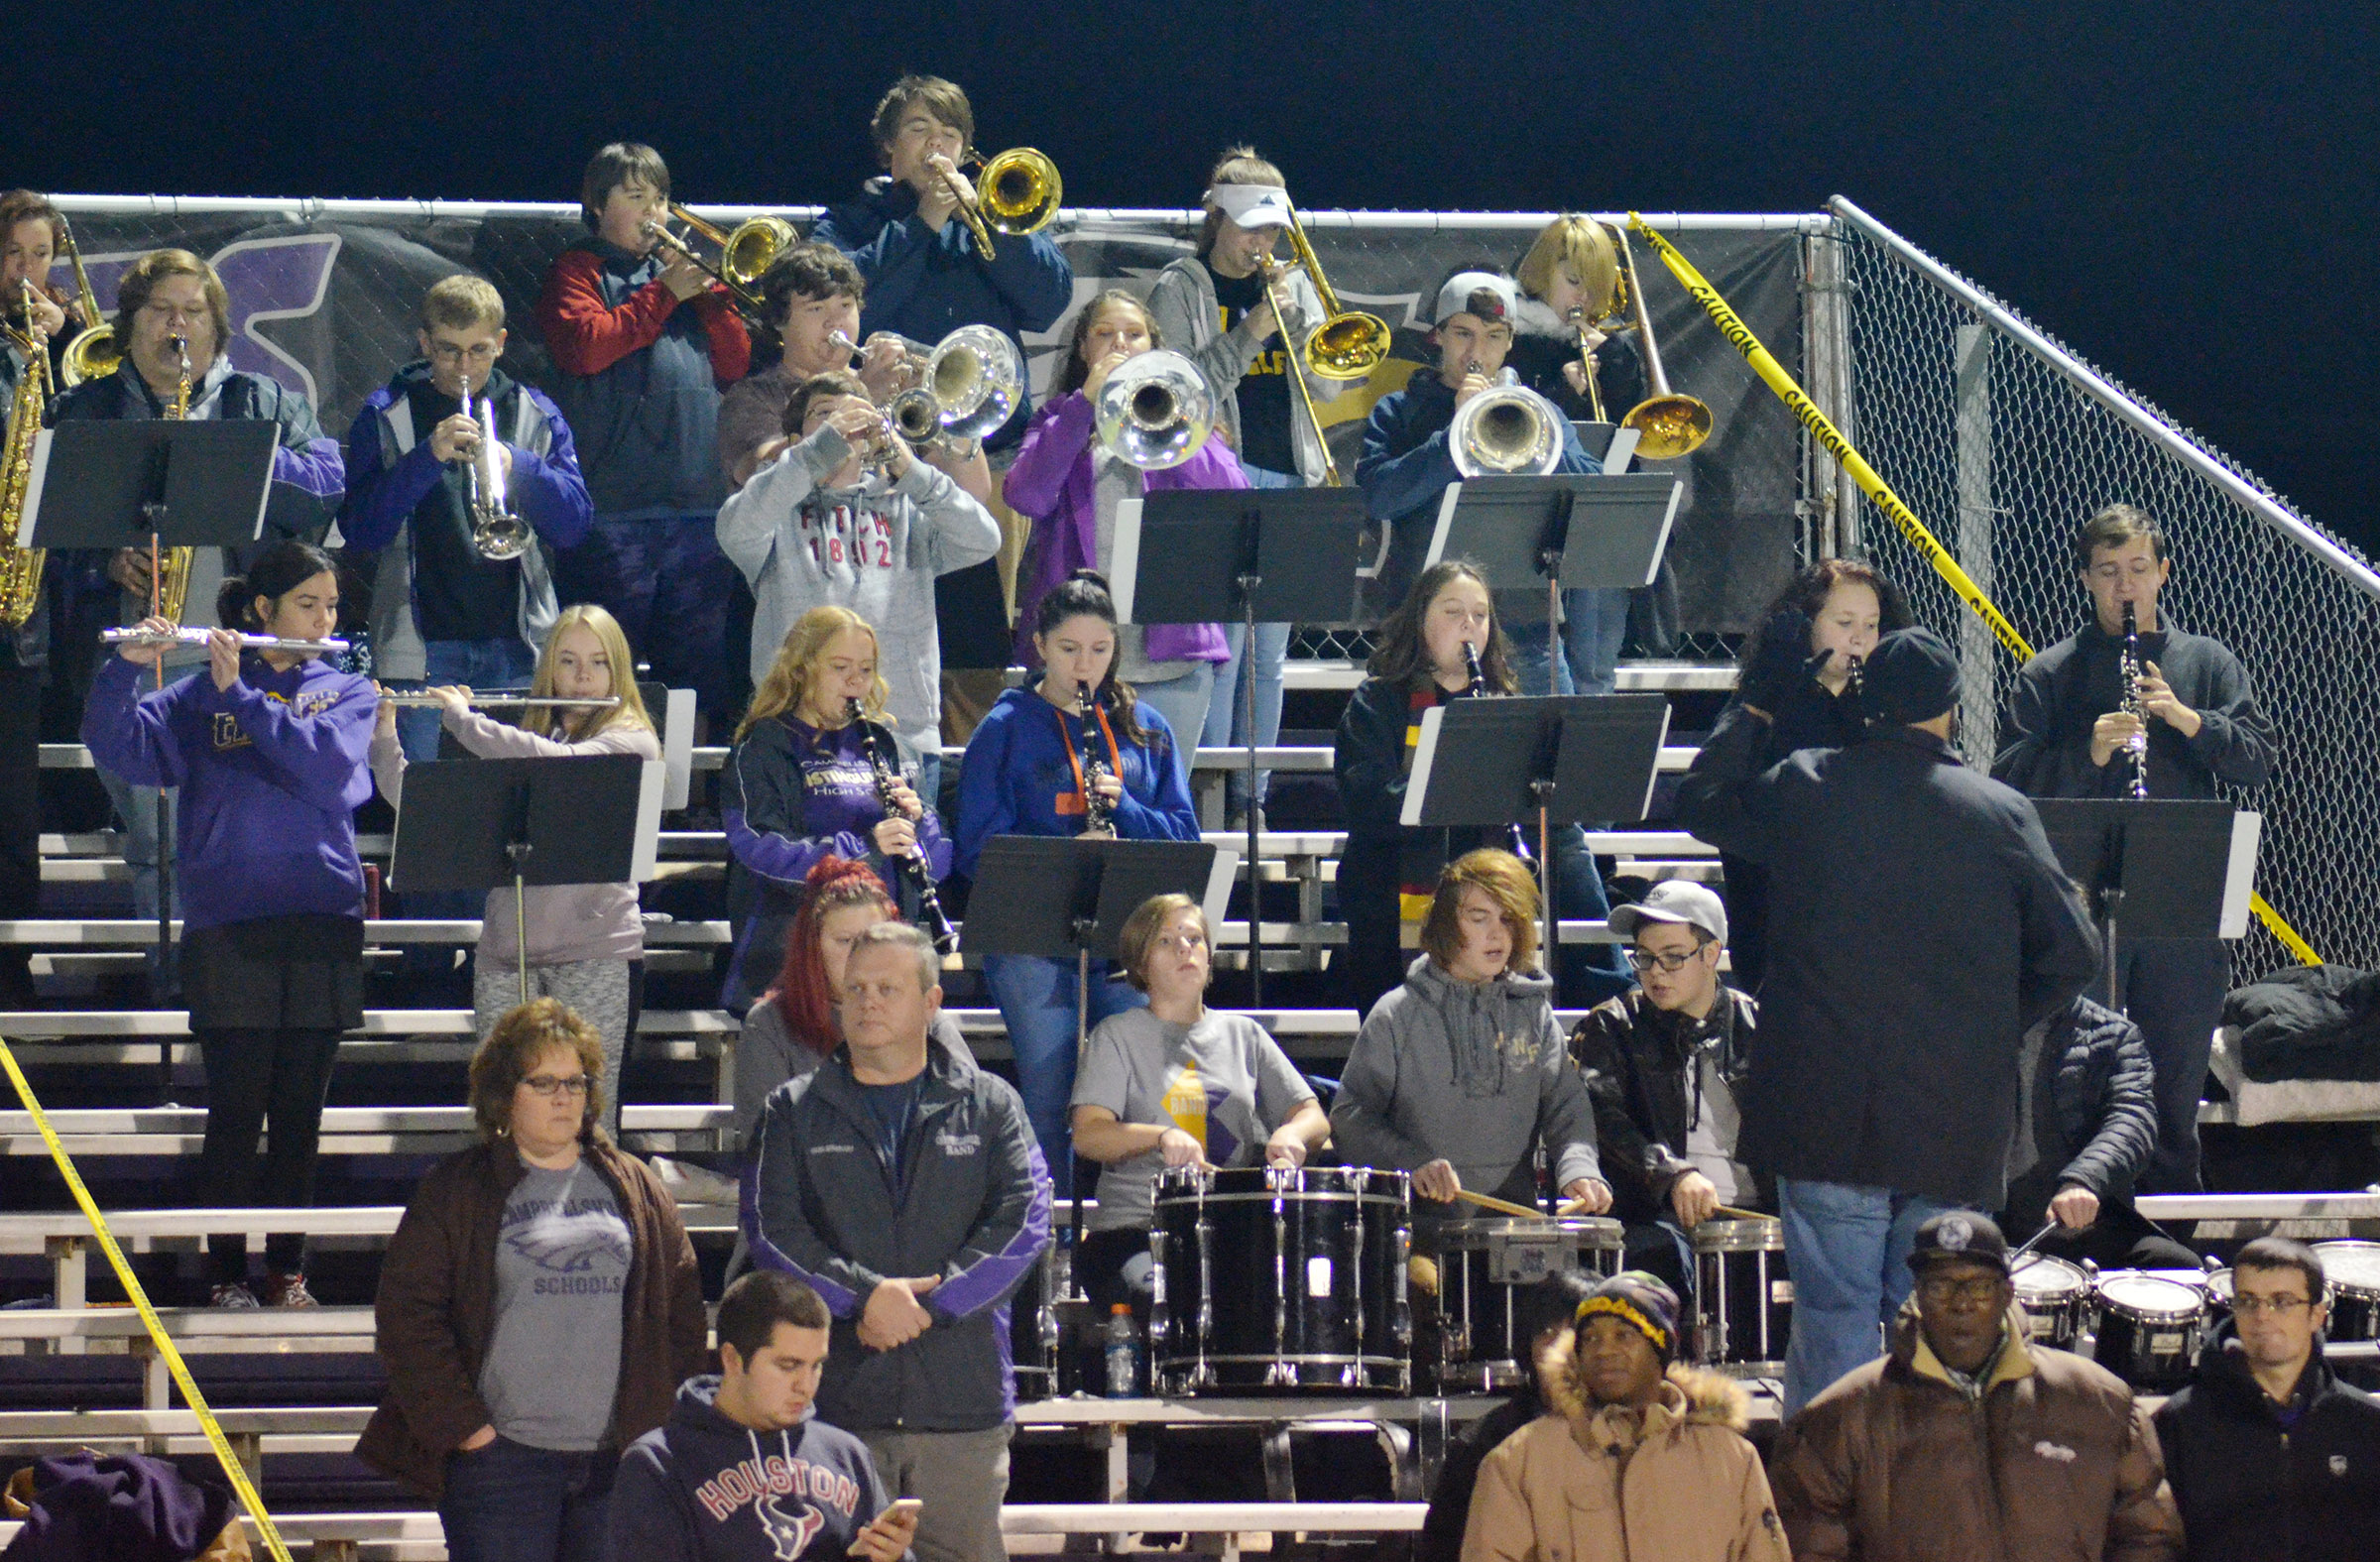 CHS band members play the National Anthem.